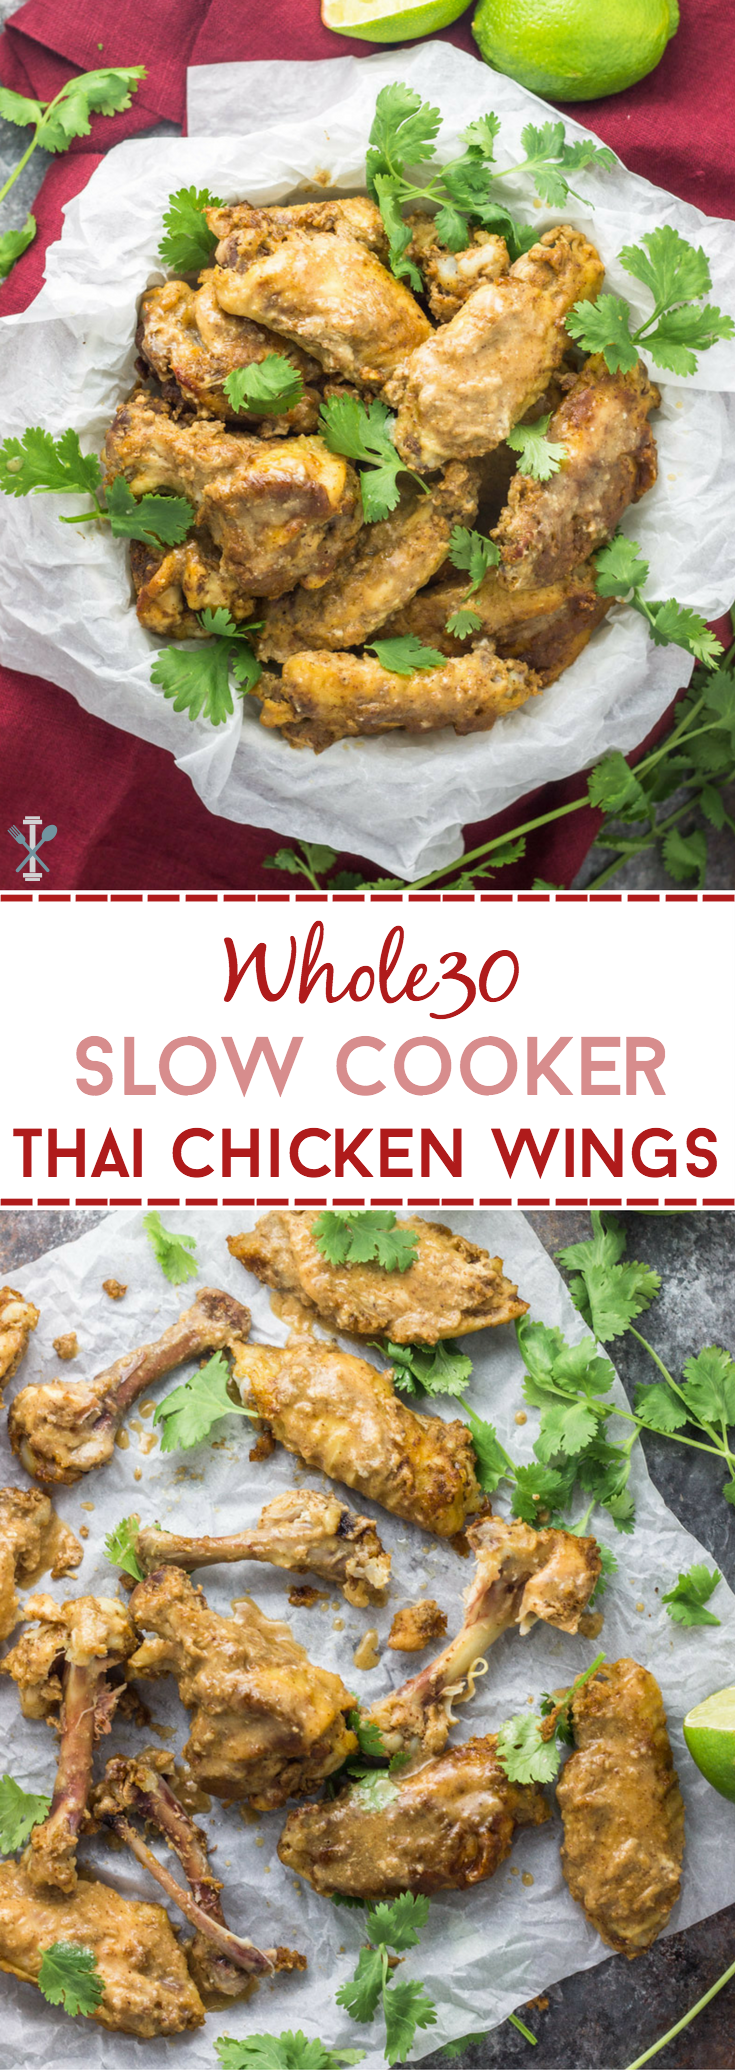 These slow cooker Thai chicken wings are paleo and Whole30. Made with a rich almond butter sauce, they're the easiest football appetizer this fall. Healthy game day food, in a crockpot!